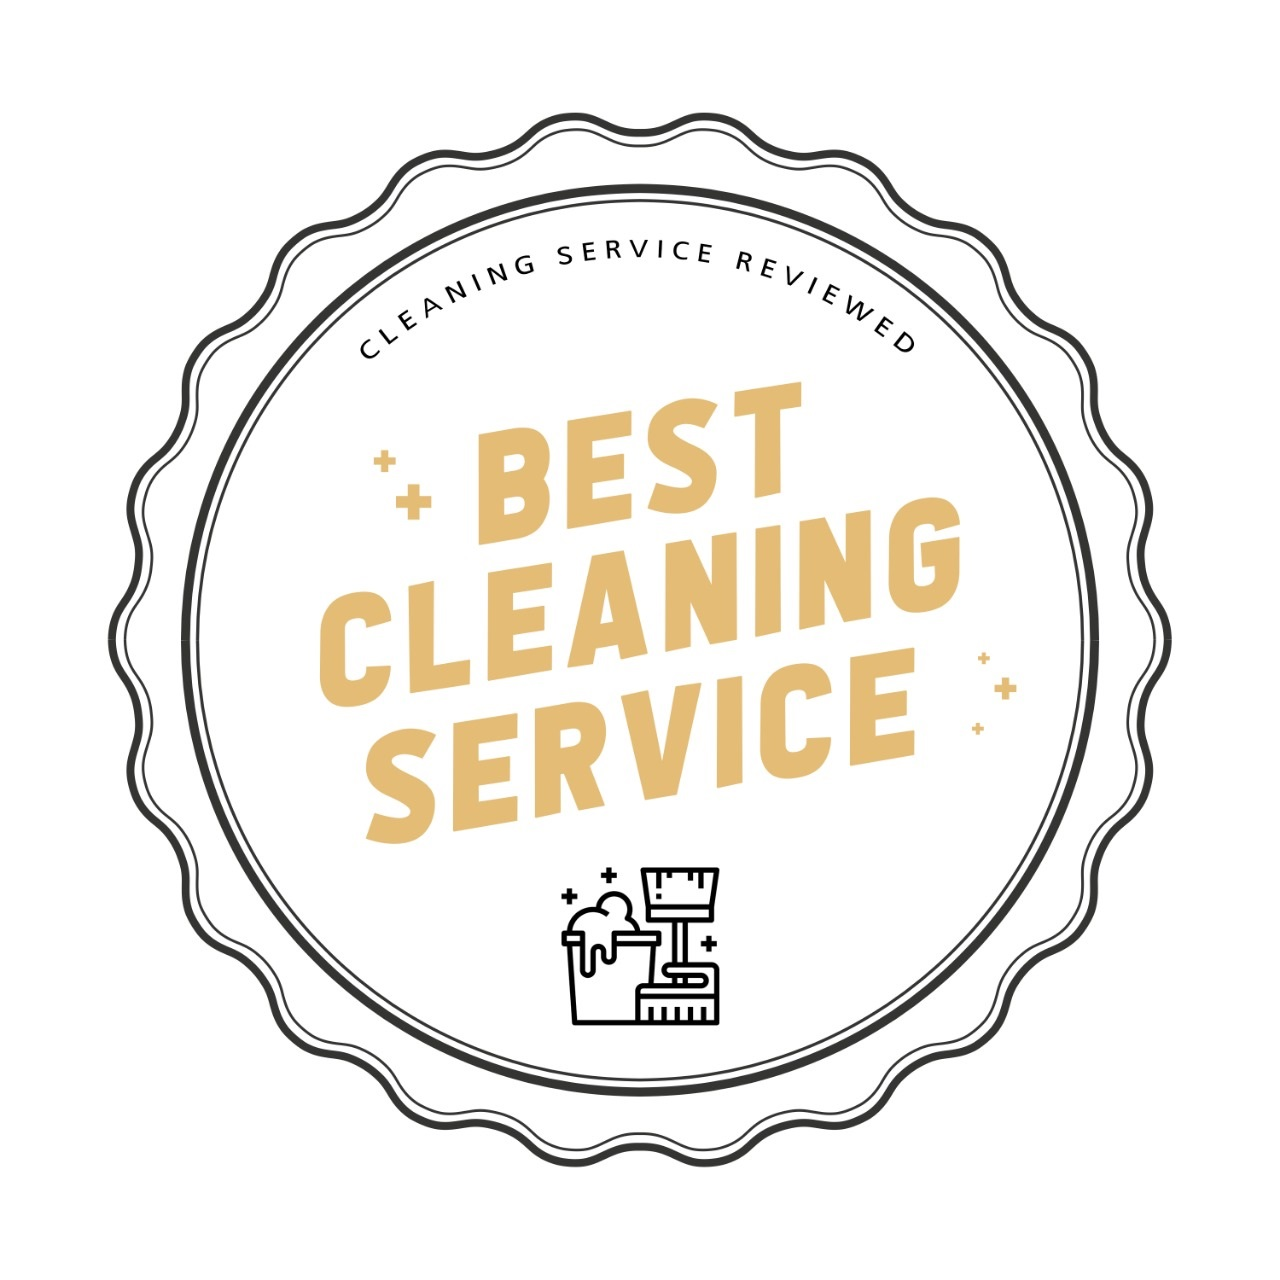 edmonton's best cleaning service